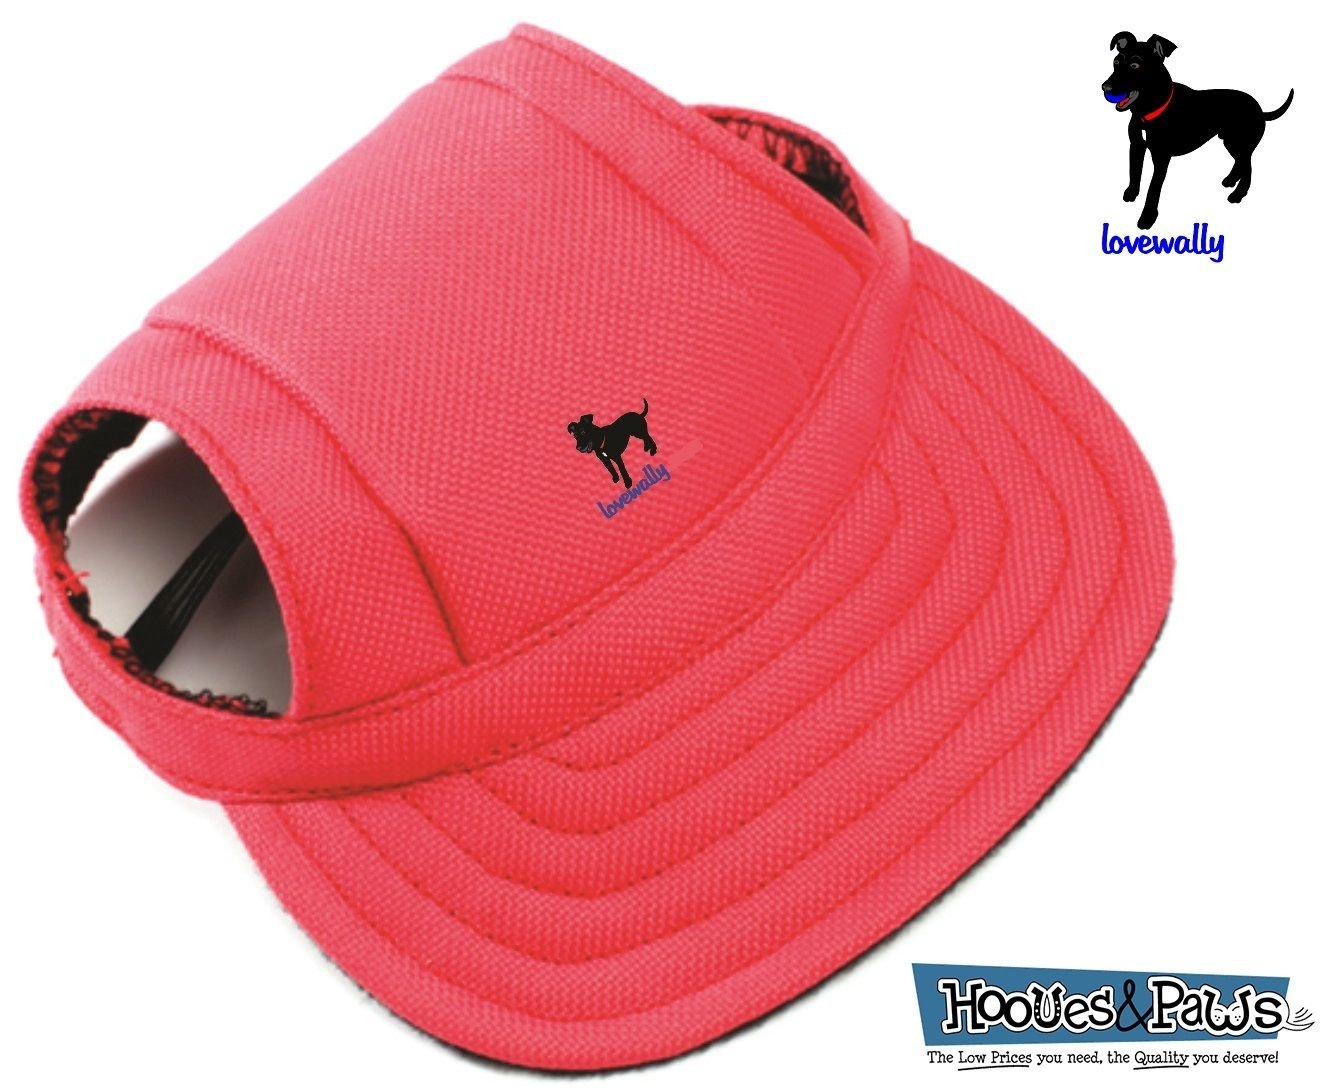 LoveWally Dog Outdoor PET Hat RED ♦ Adjustable Authentic (Large)